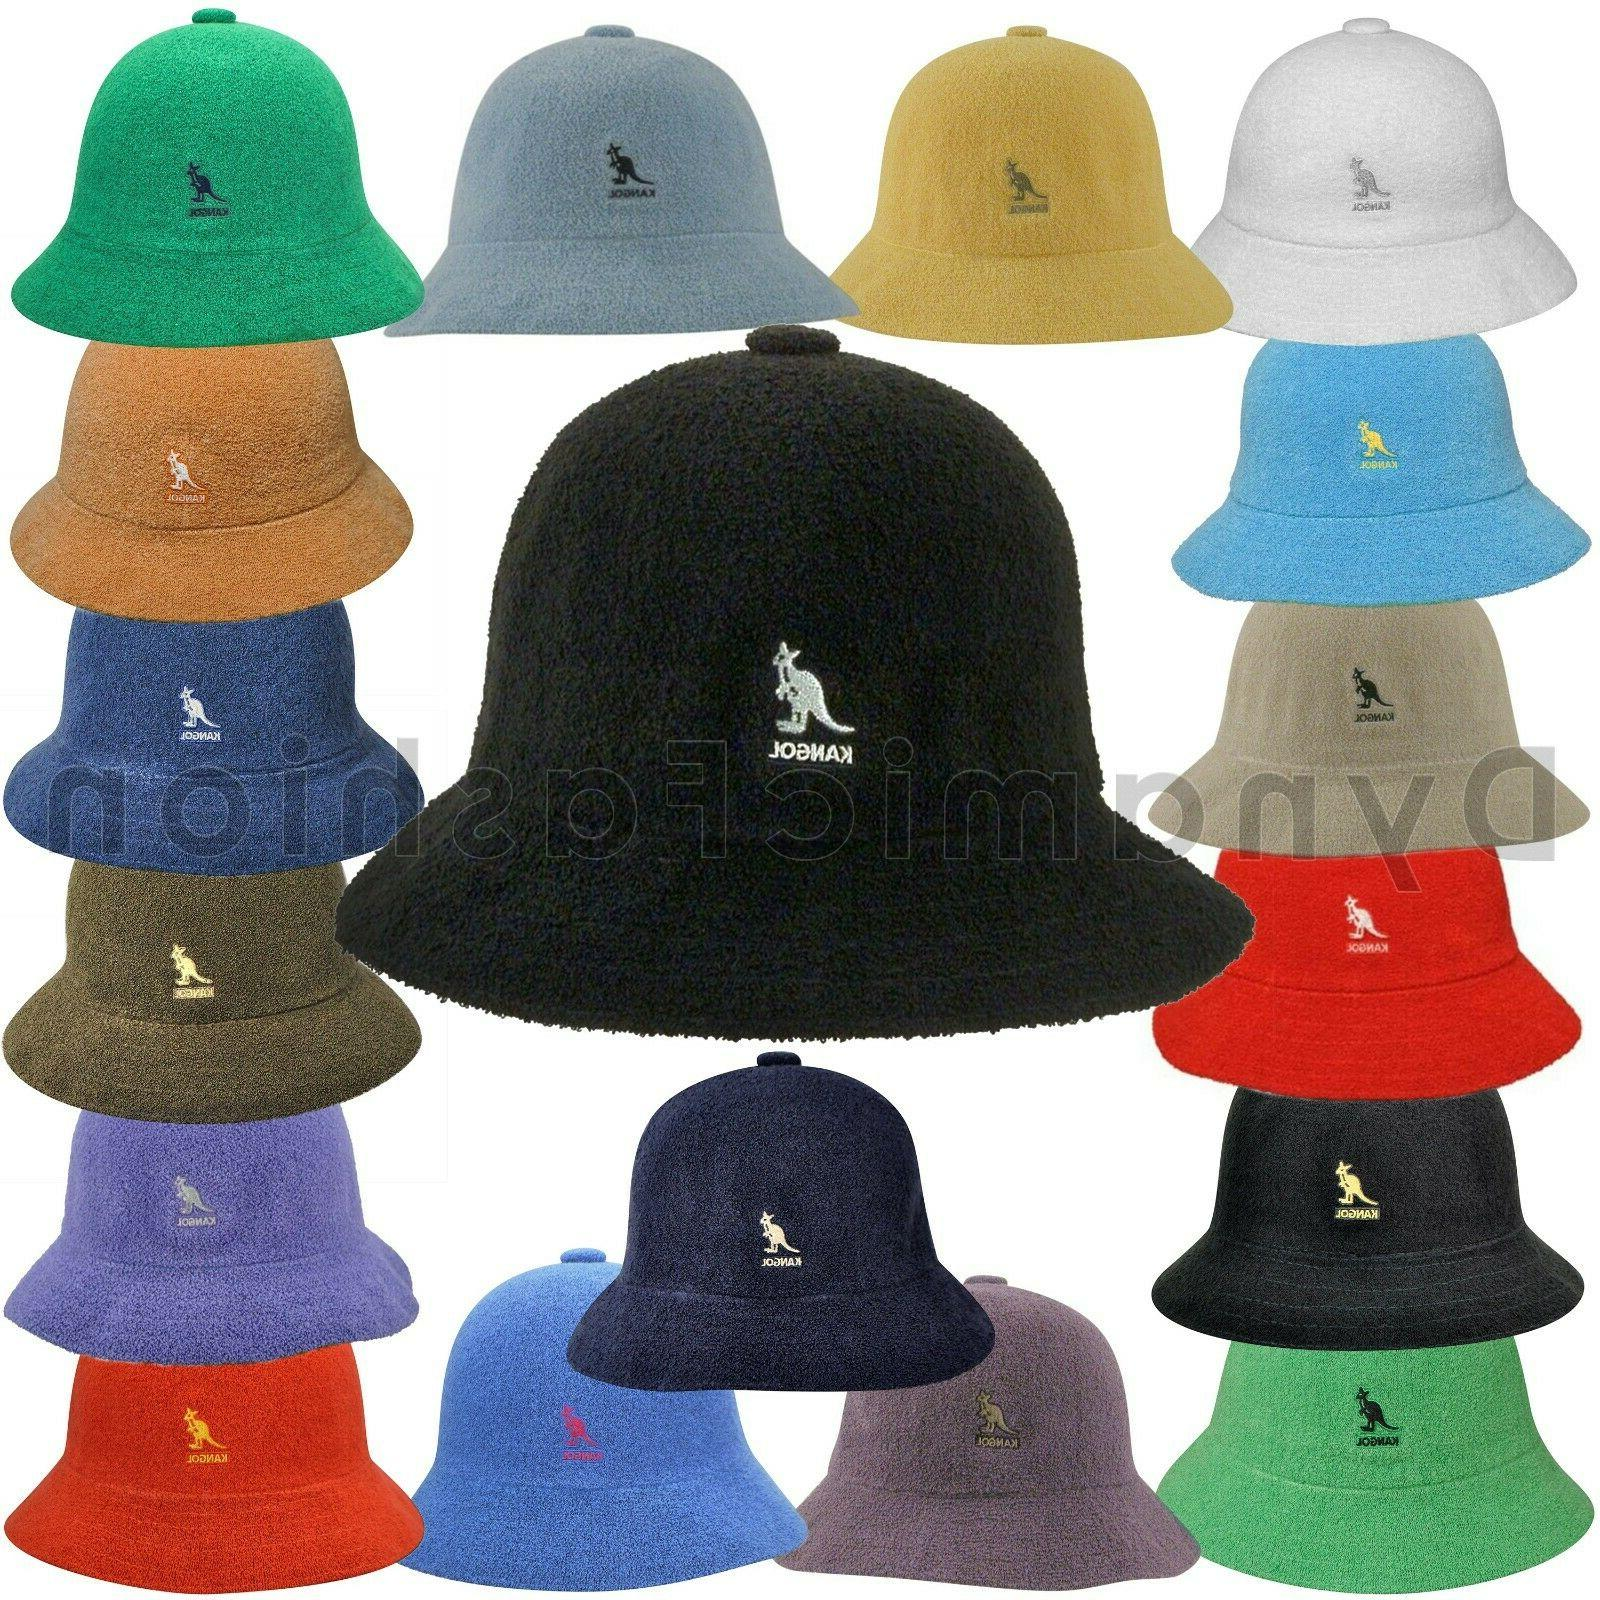 Authentic KANGOL Bermuda Casual Bucket Cap Hat 0397BC Sizes